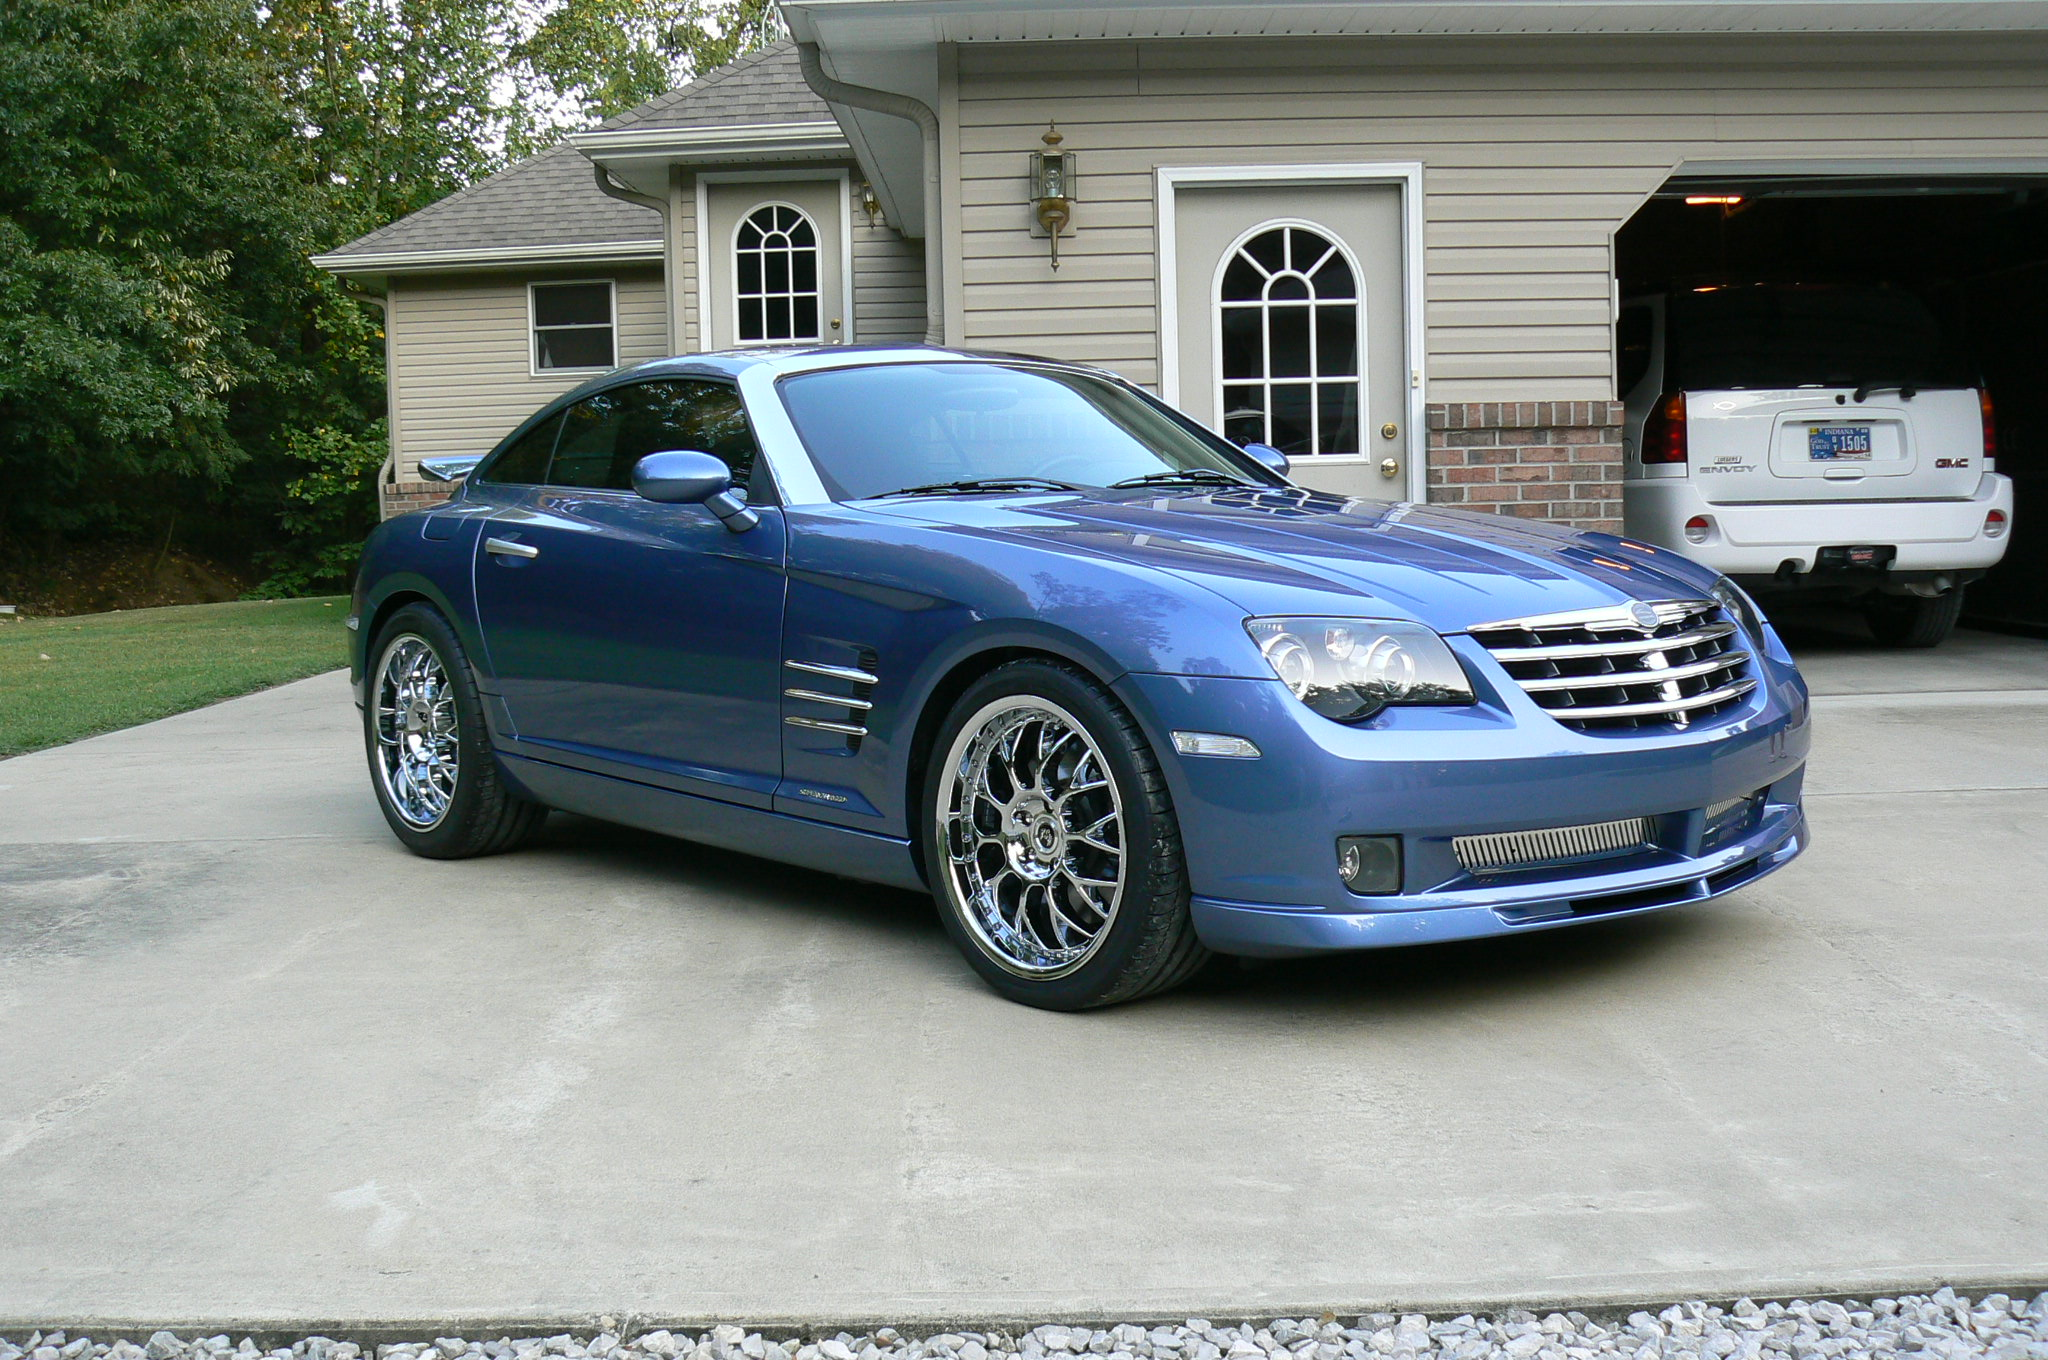 2005  Chrysler Crossfire SRT 6   RENNtech picture, mods, upgrades